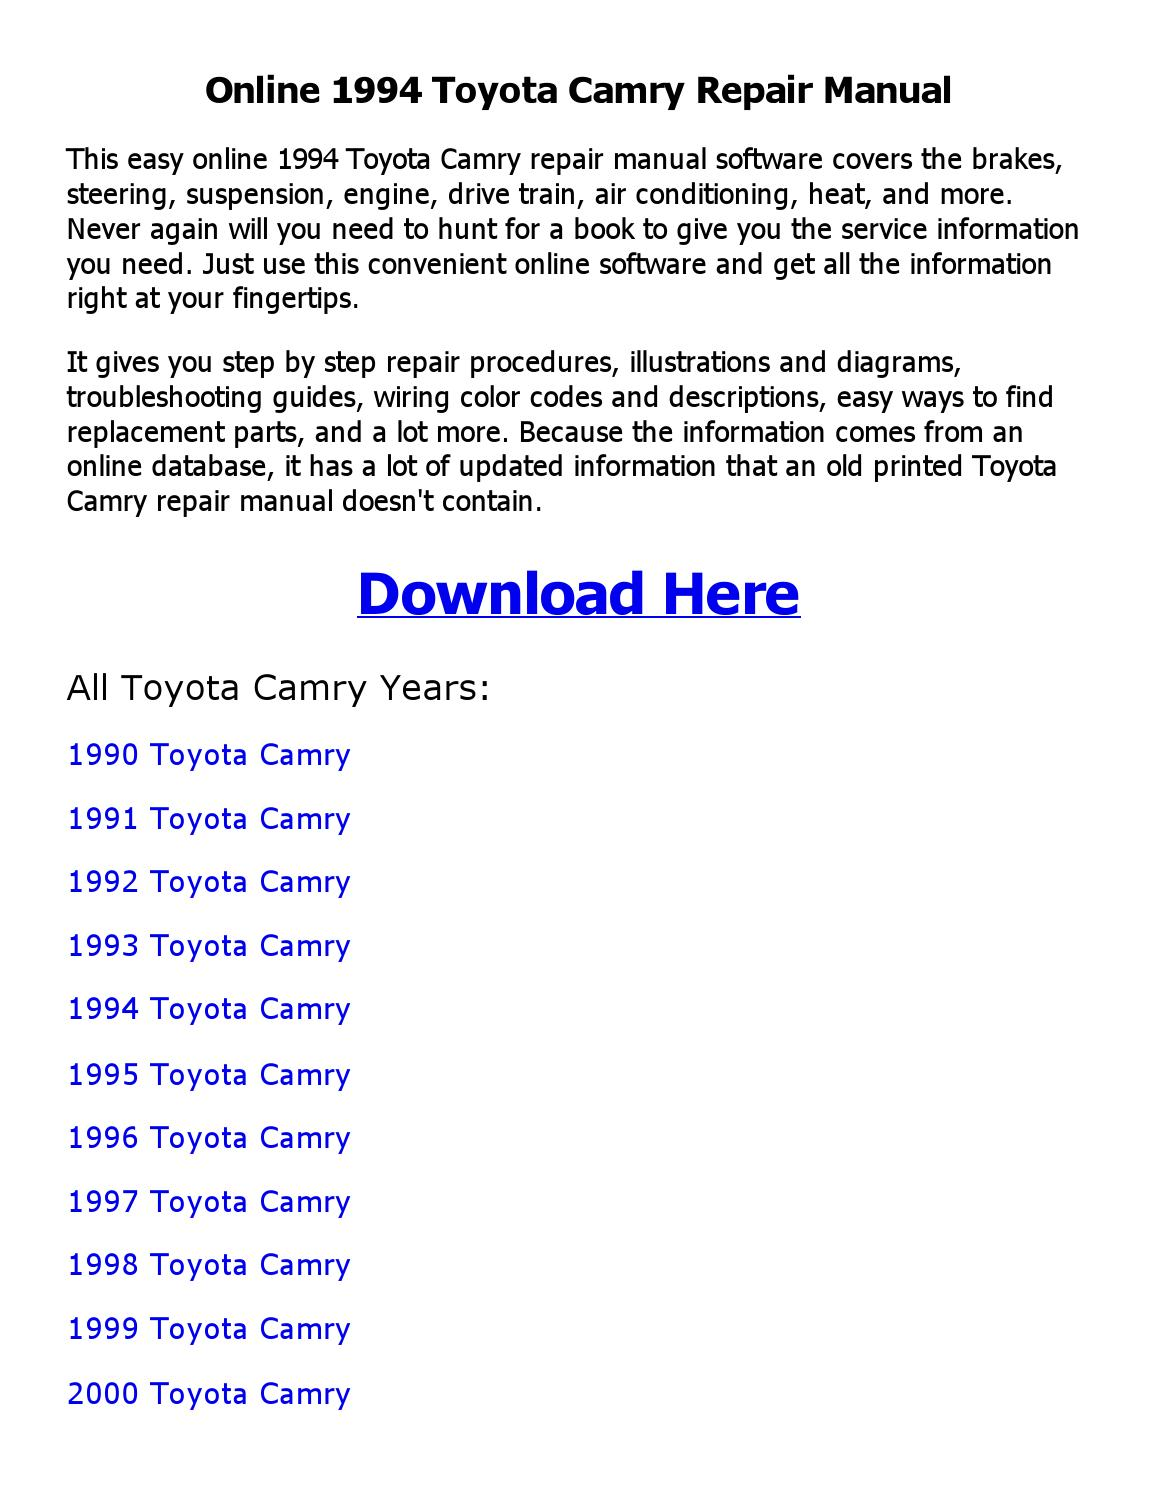 1994 Toyota Camry Repair Manual Online By Sanod Saha Issuu Engine Diagram